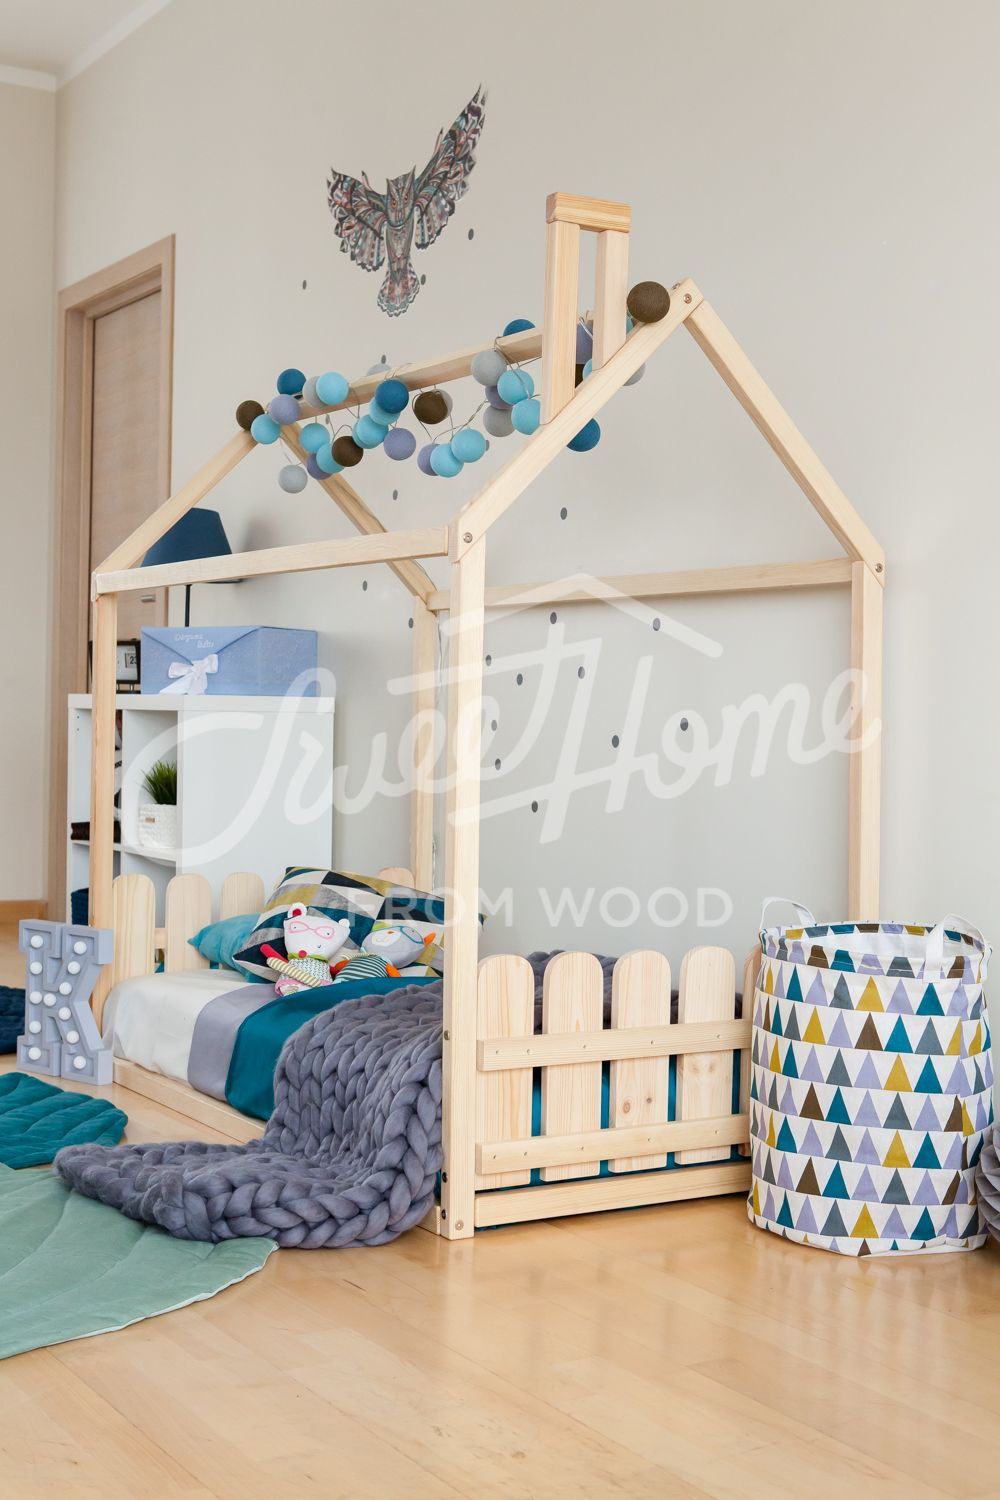 House Bed Twin Montessori Floor Bed Toddler House Bed House Bed Frame Toddler Bed House Floor Bed Frame House